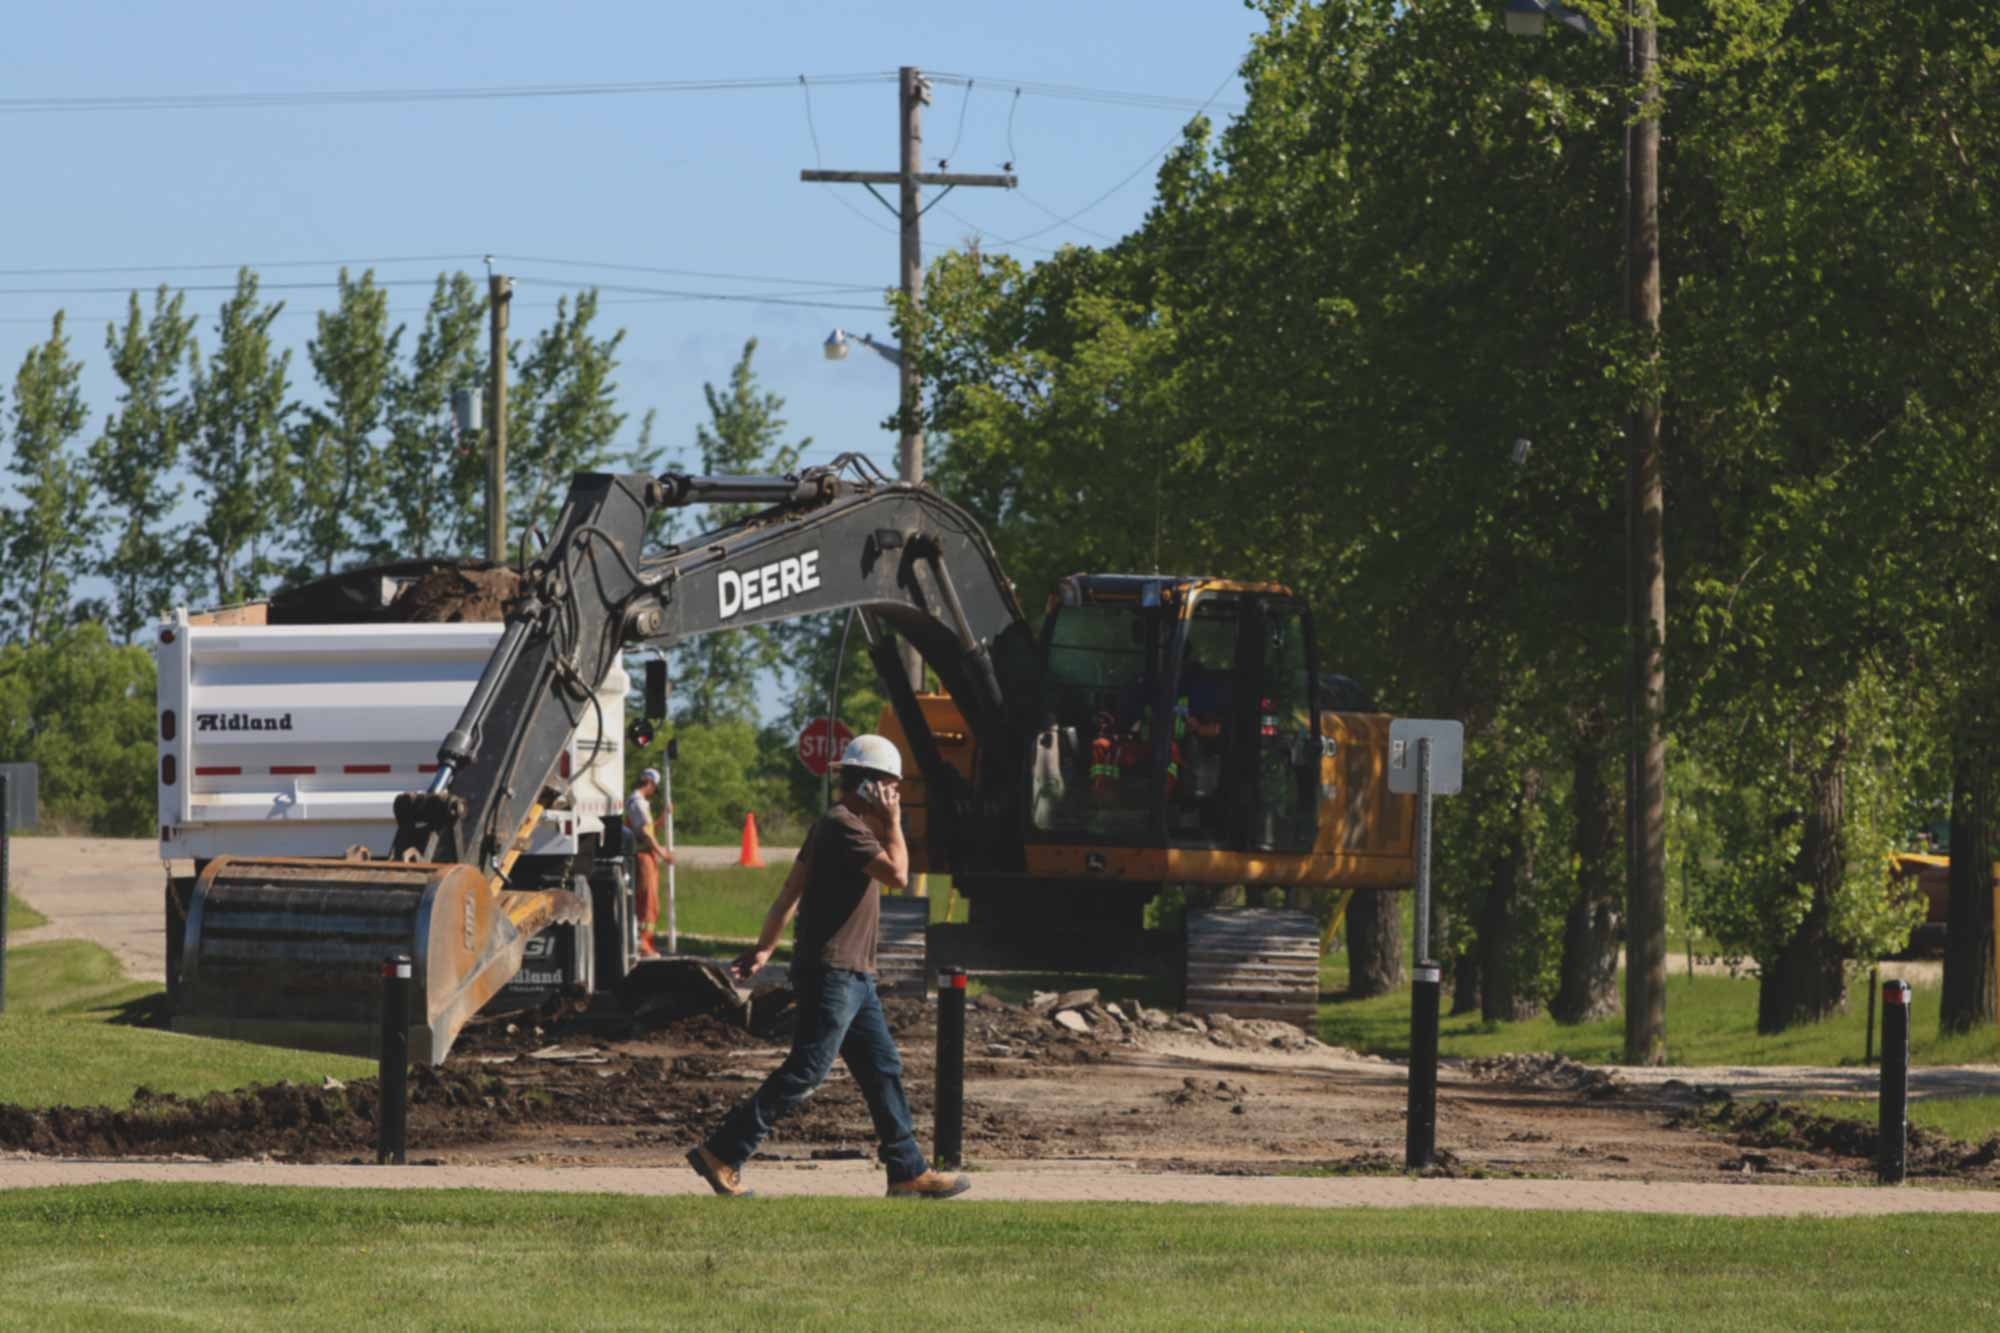 Construction projects a highlight of Spring and Summer at Providence Image